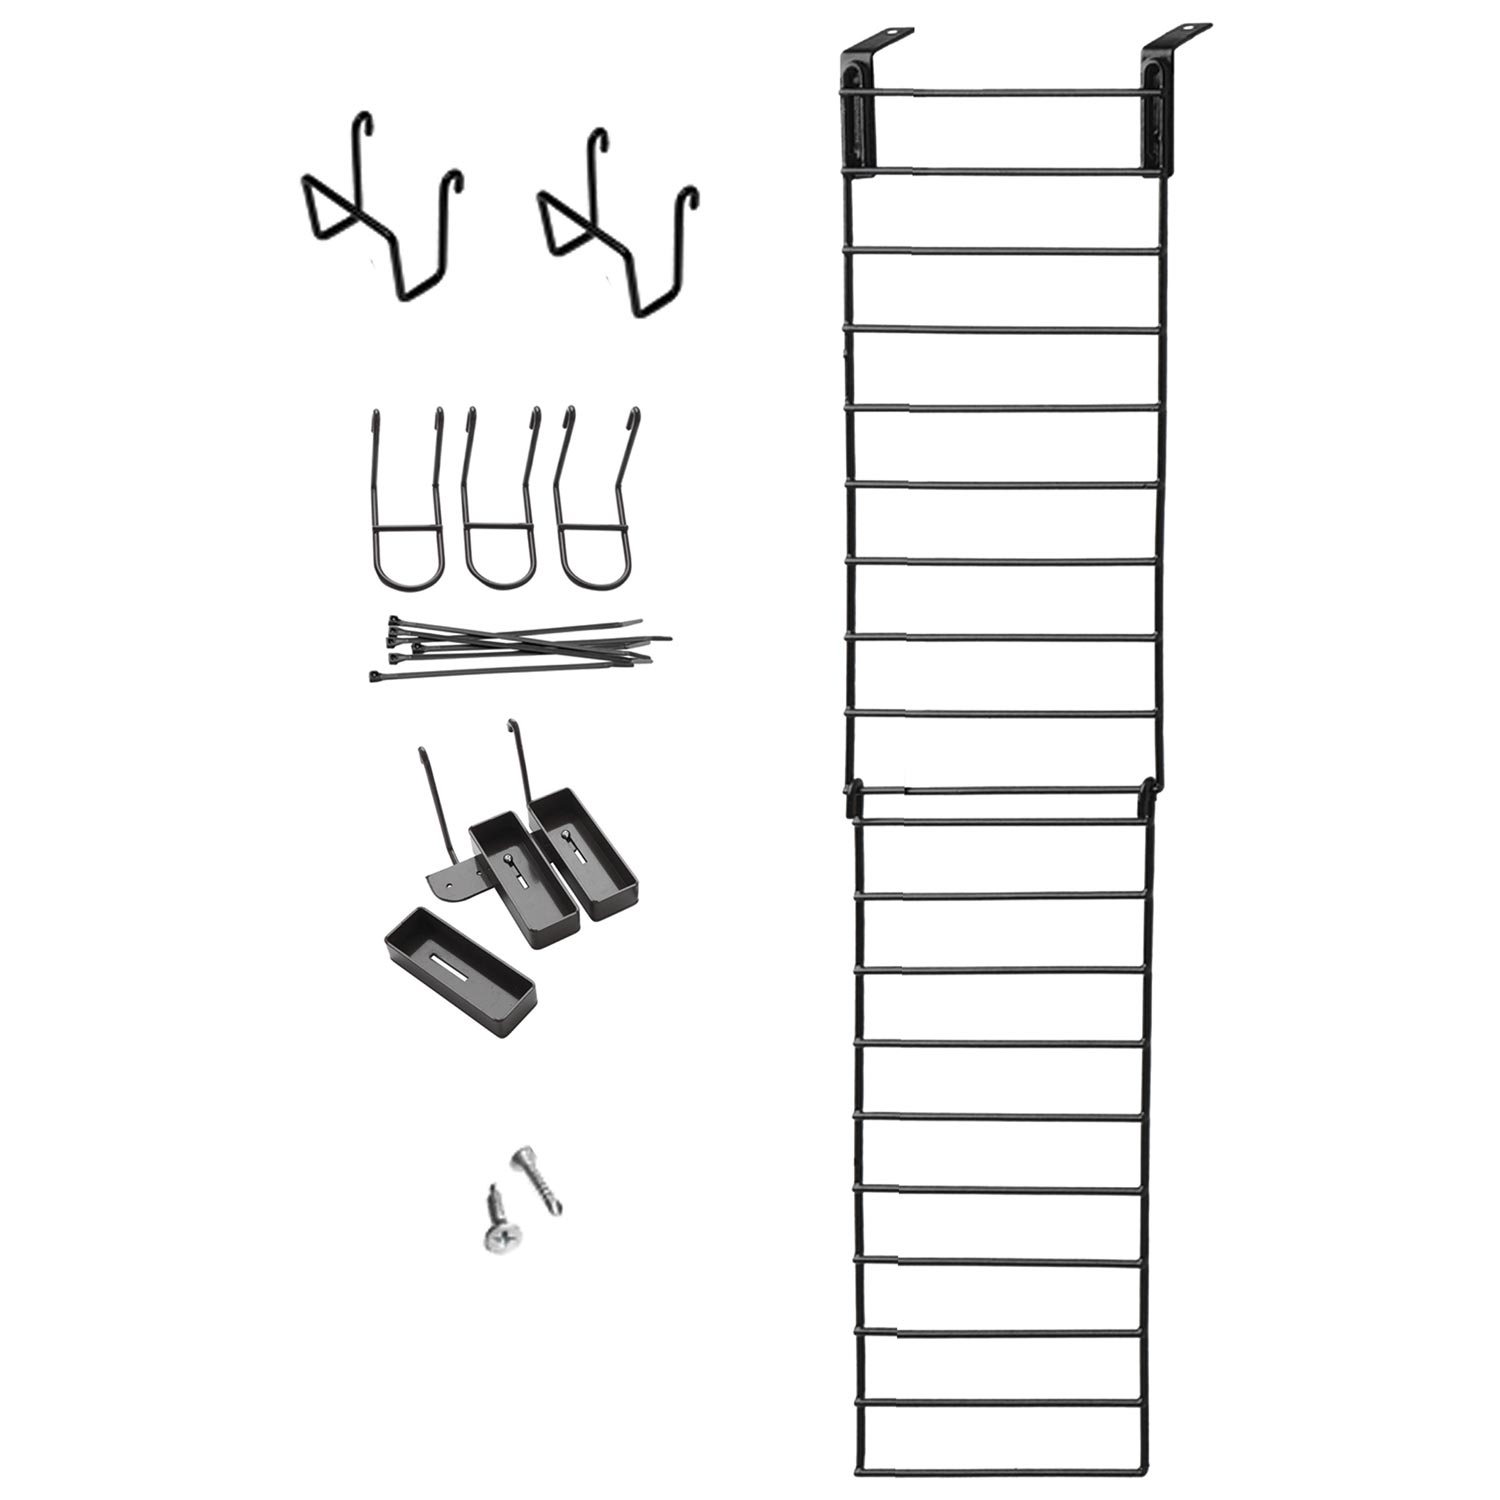 The Maximizer Narrow Gun Organizer - 3 Rifles, 2 Pistols